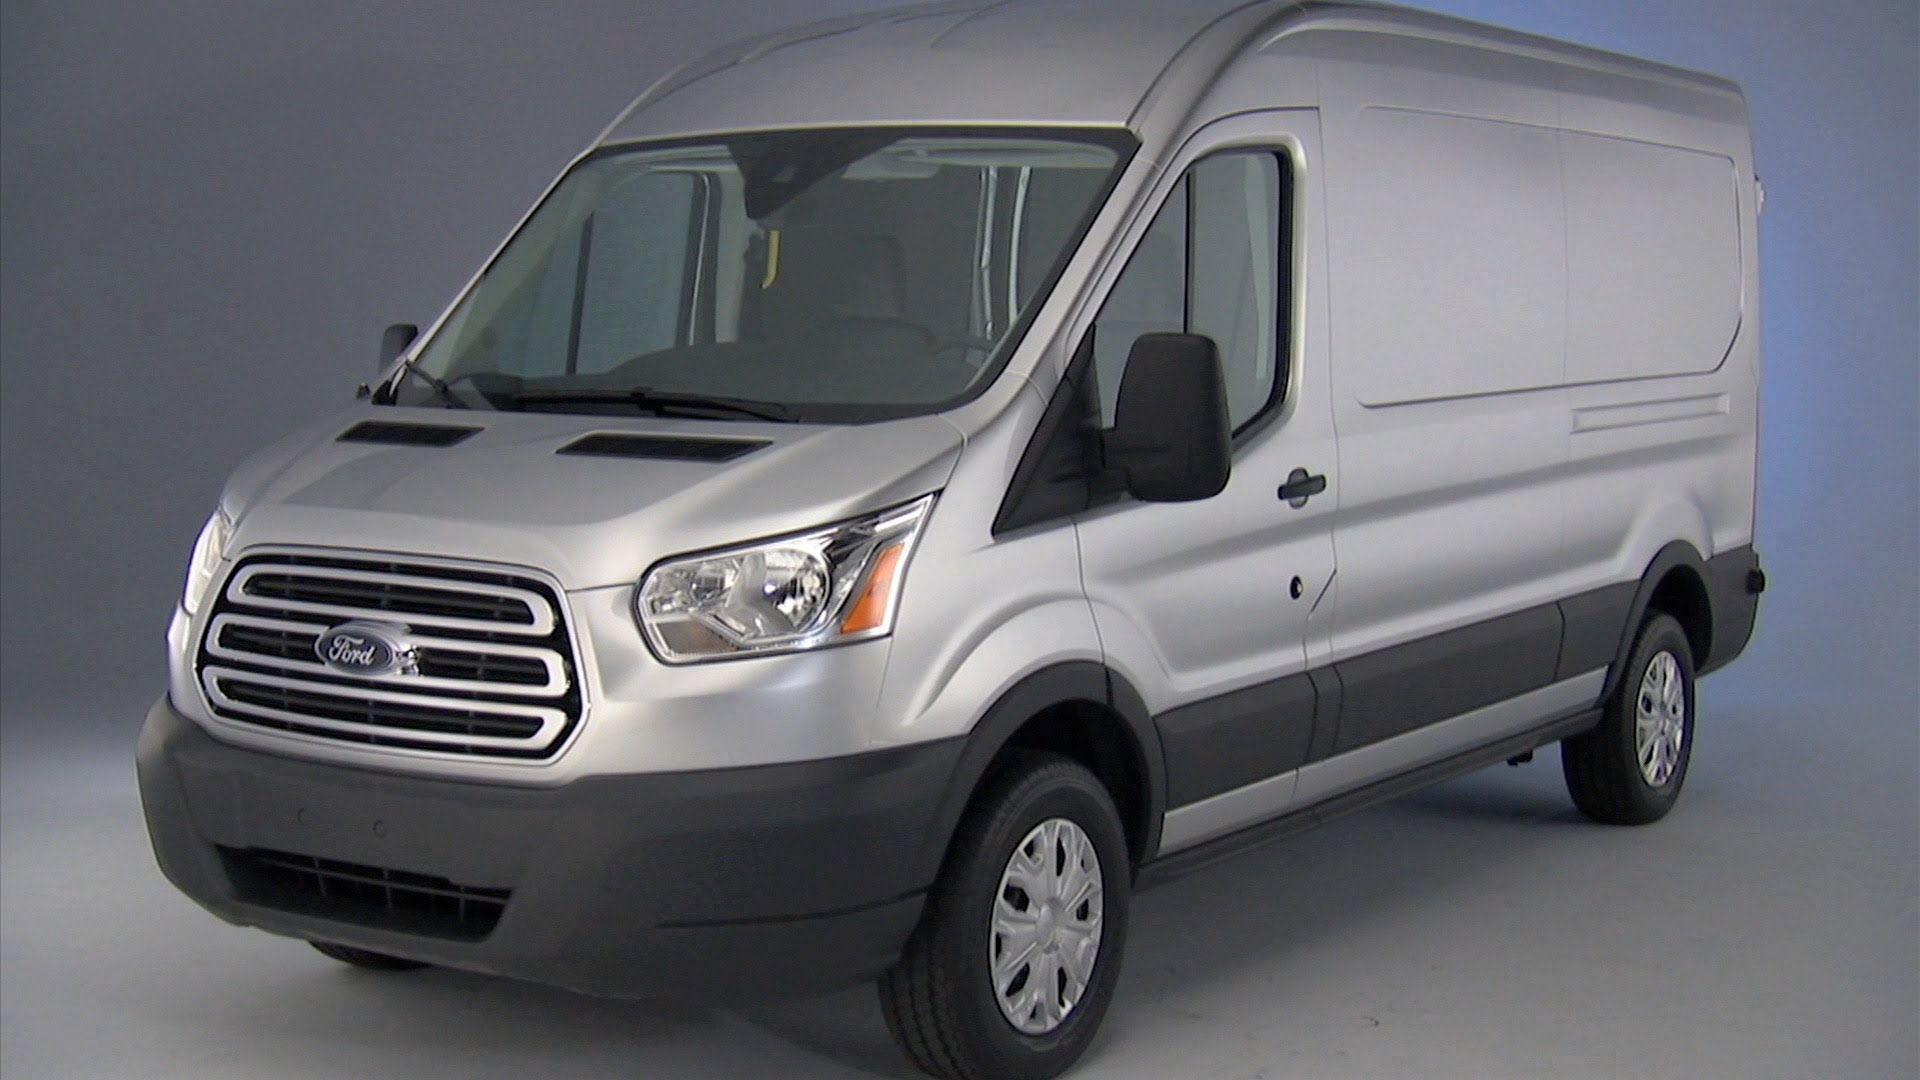 2015 ford transit van information and photos momentcar. Black Bedroom Furniture Sets. Home Design Ideas